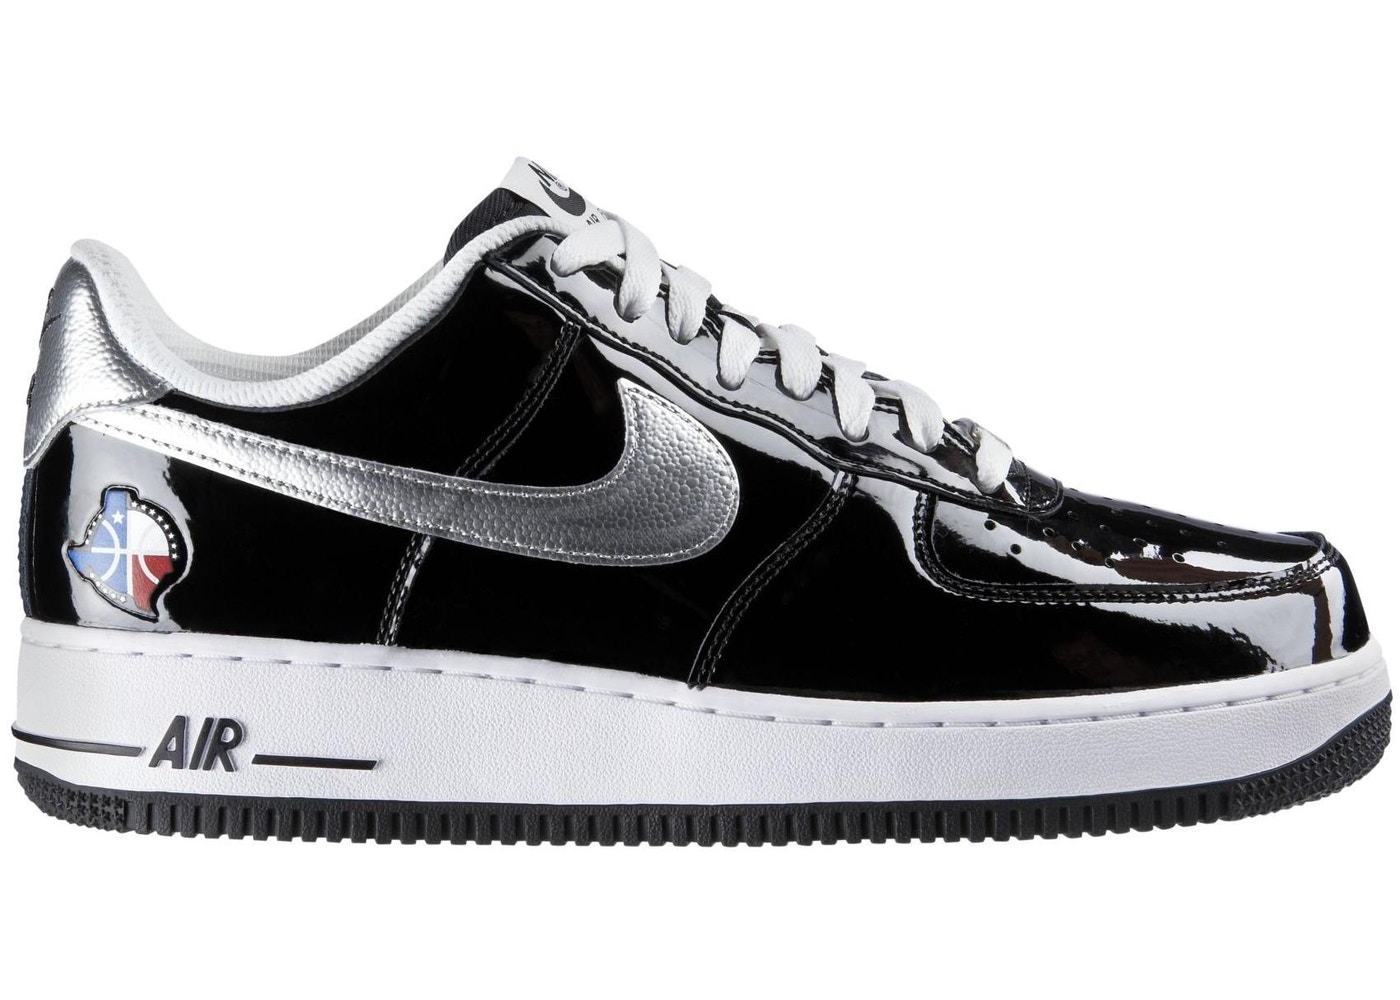 Promover medida Chelín  Nike Air Force 1 Low All Star (2010) - 315122-018